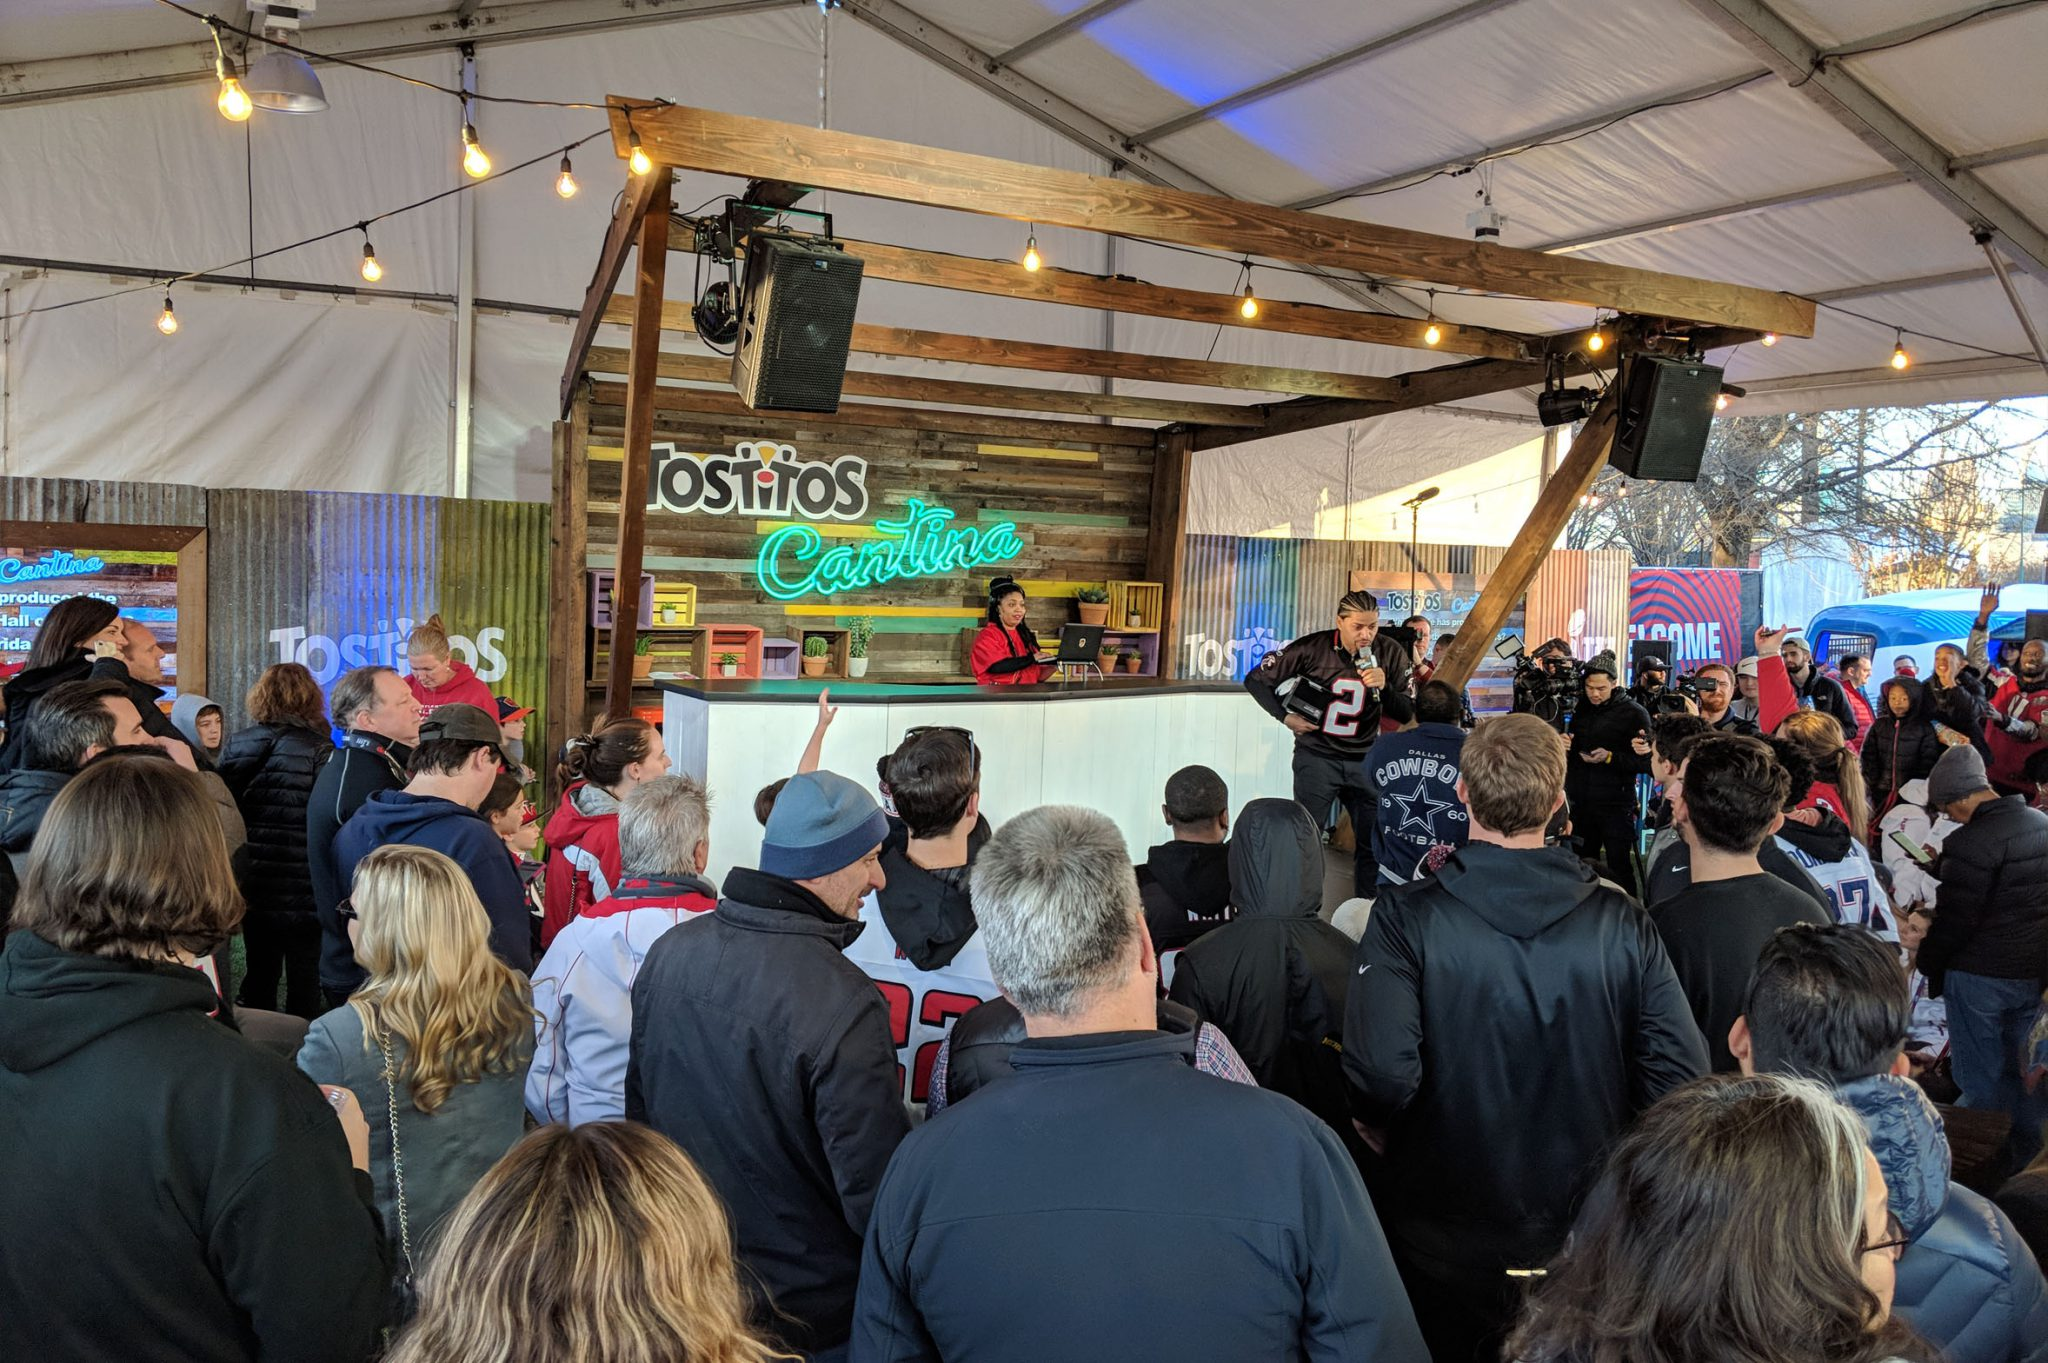 Tostitos Cantina Super Bowl